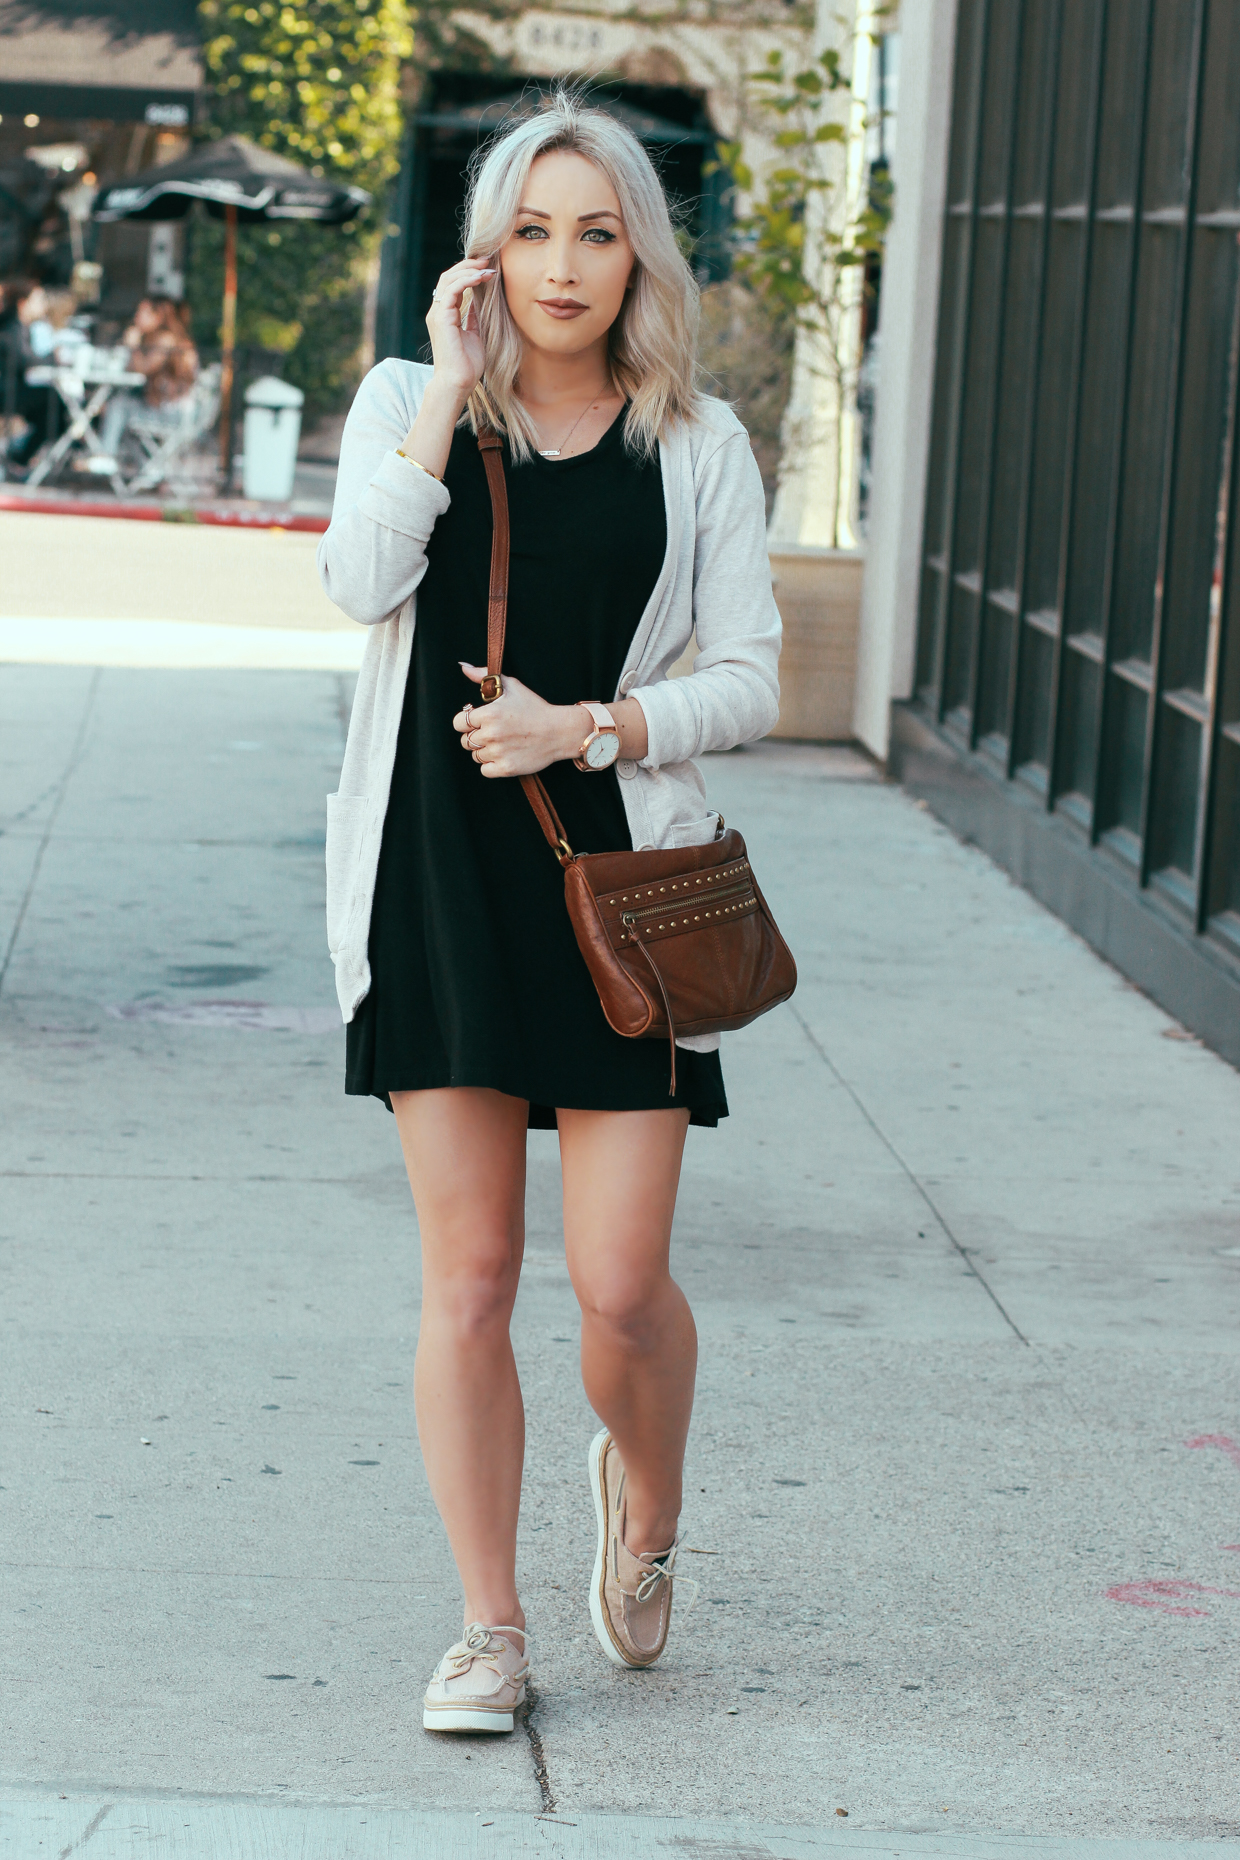 Blondie in the City | Little Black Dress and a Light Sweater | Watch: @the_fifth | Shoes: Sperry's from @rwfootwear